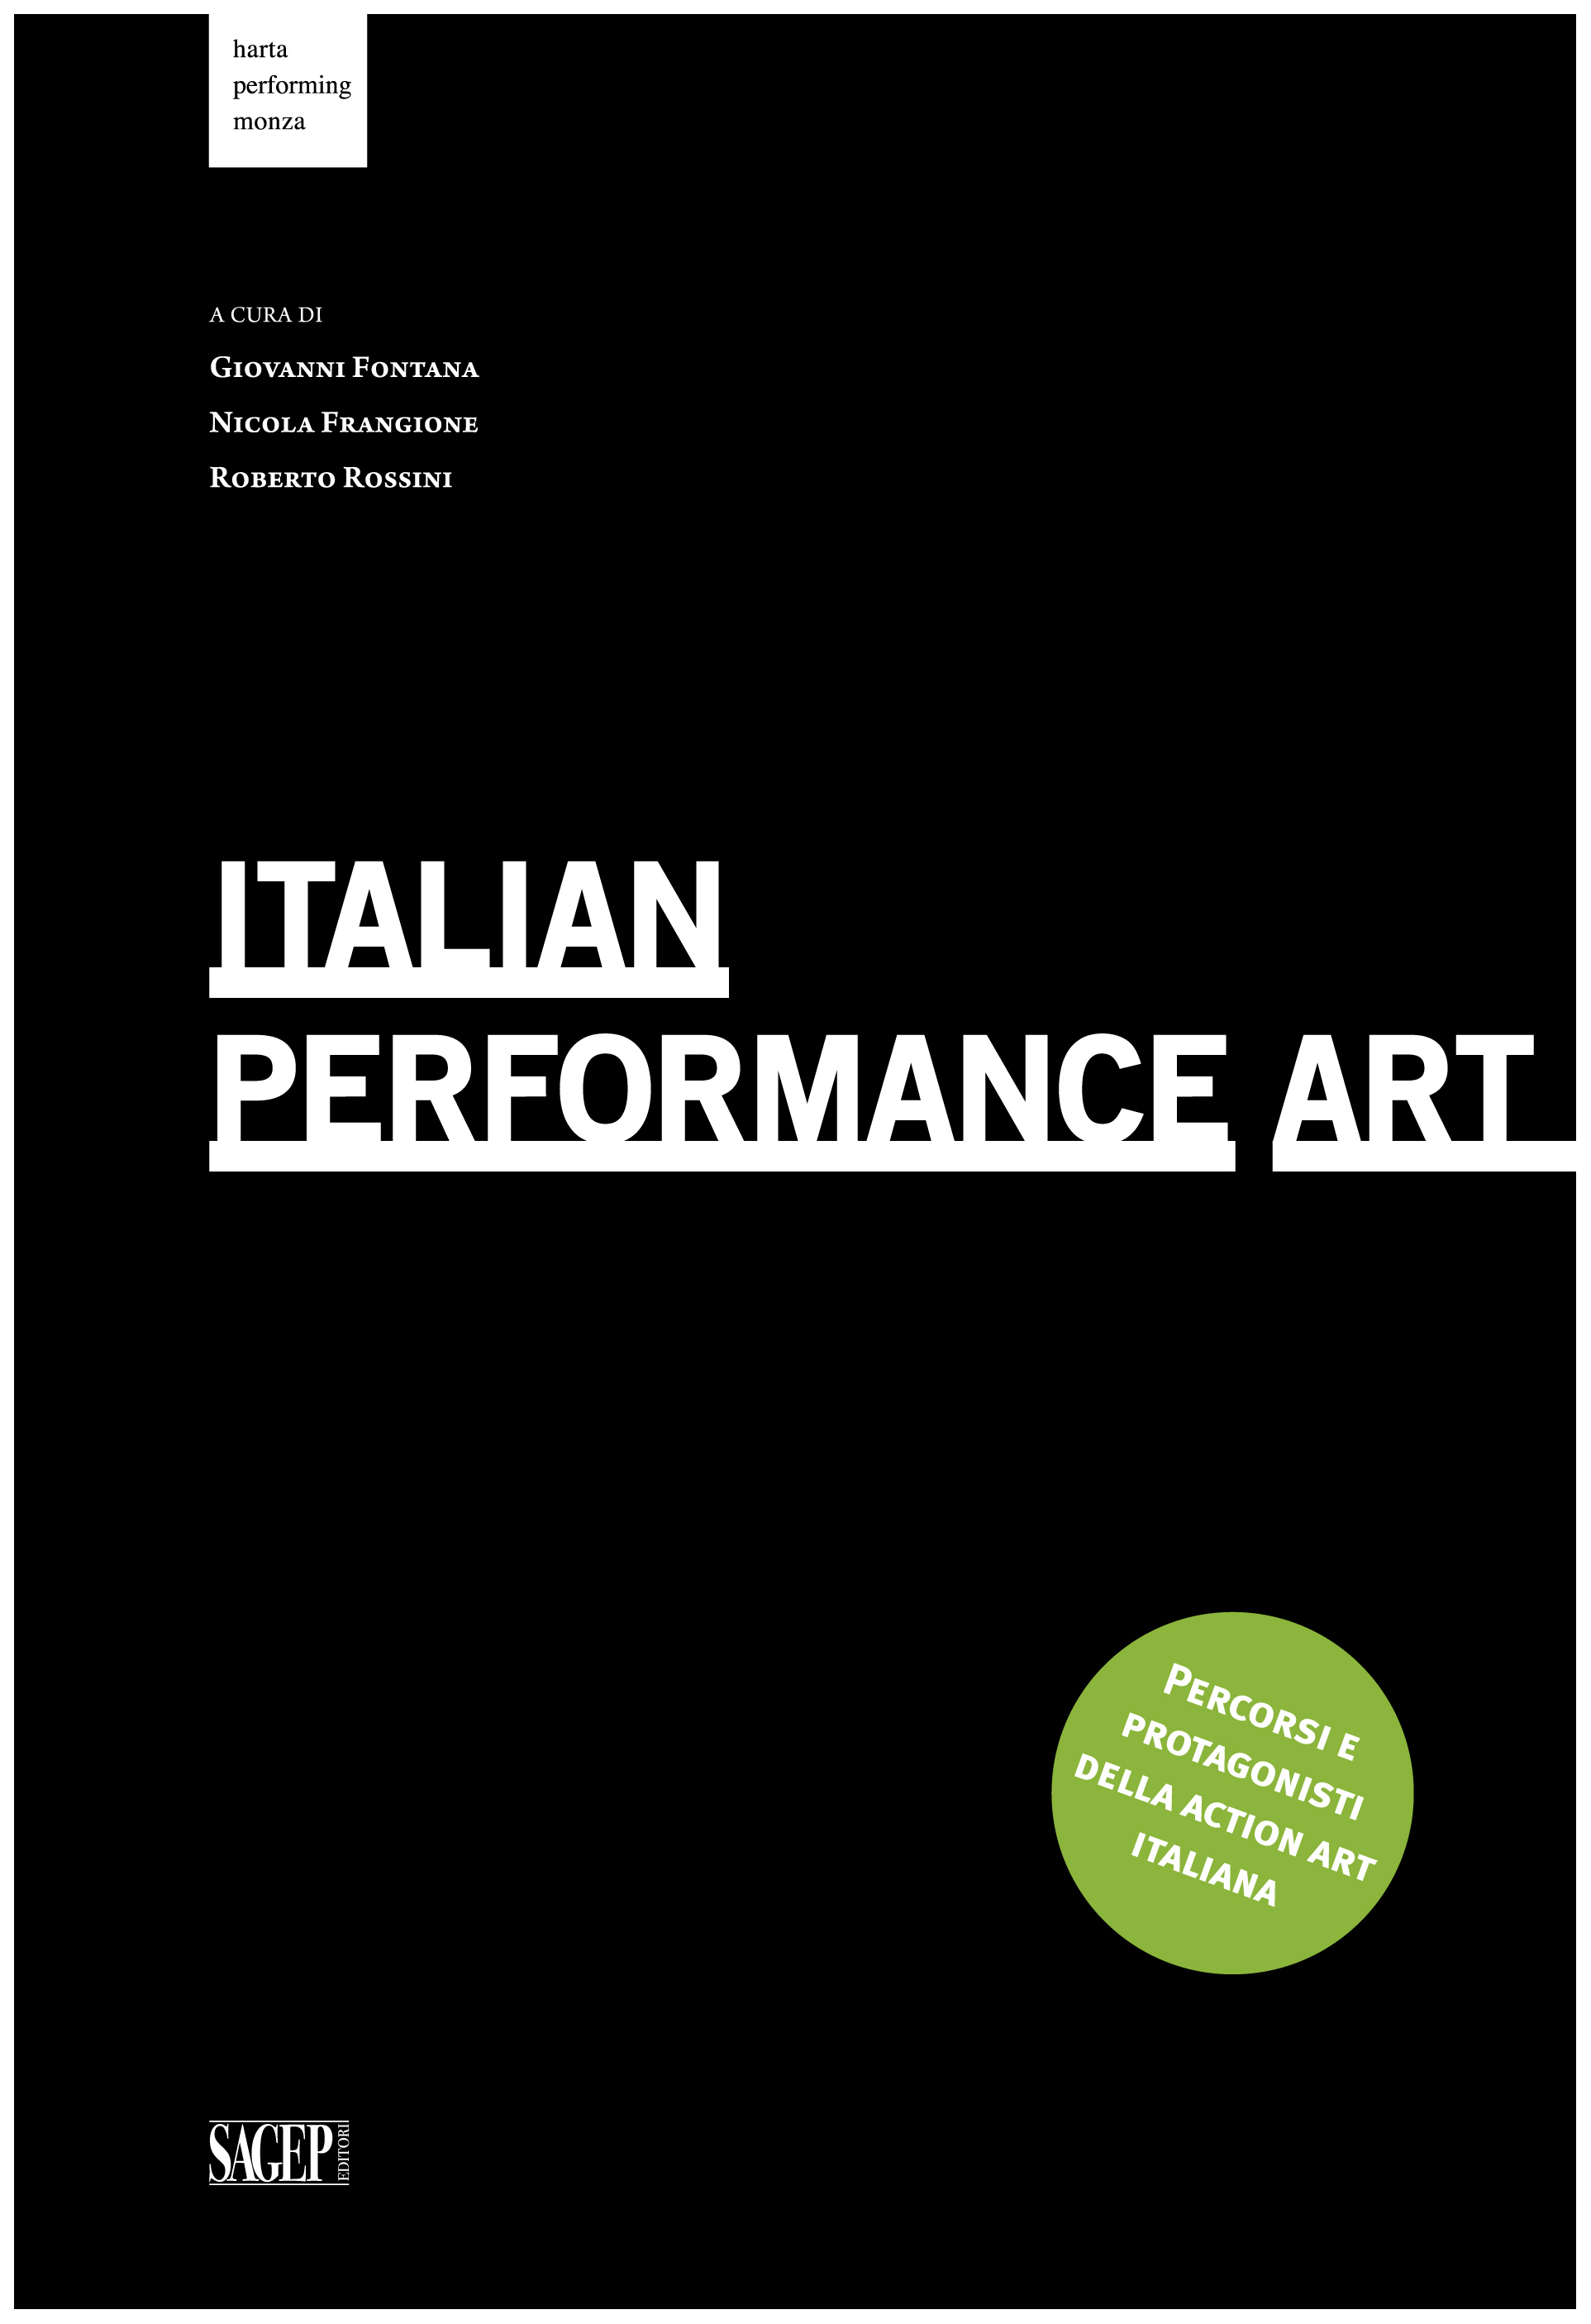 Italian Performance Art ESCAPE='HTML'